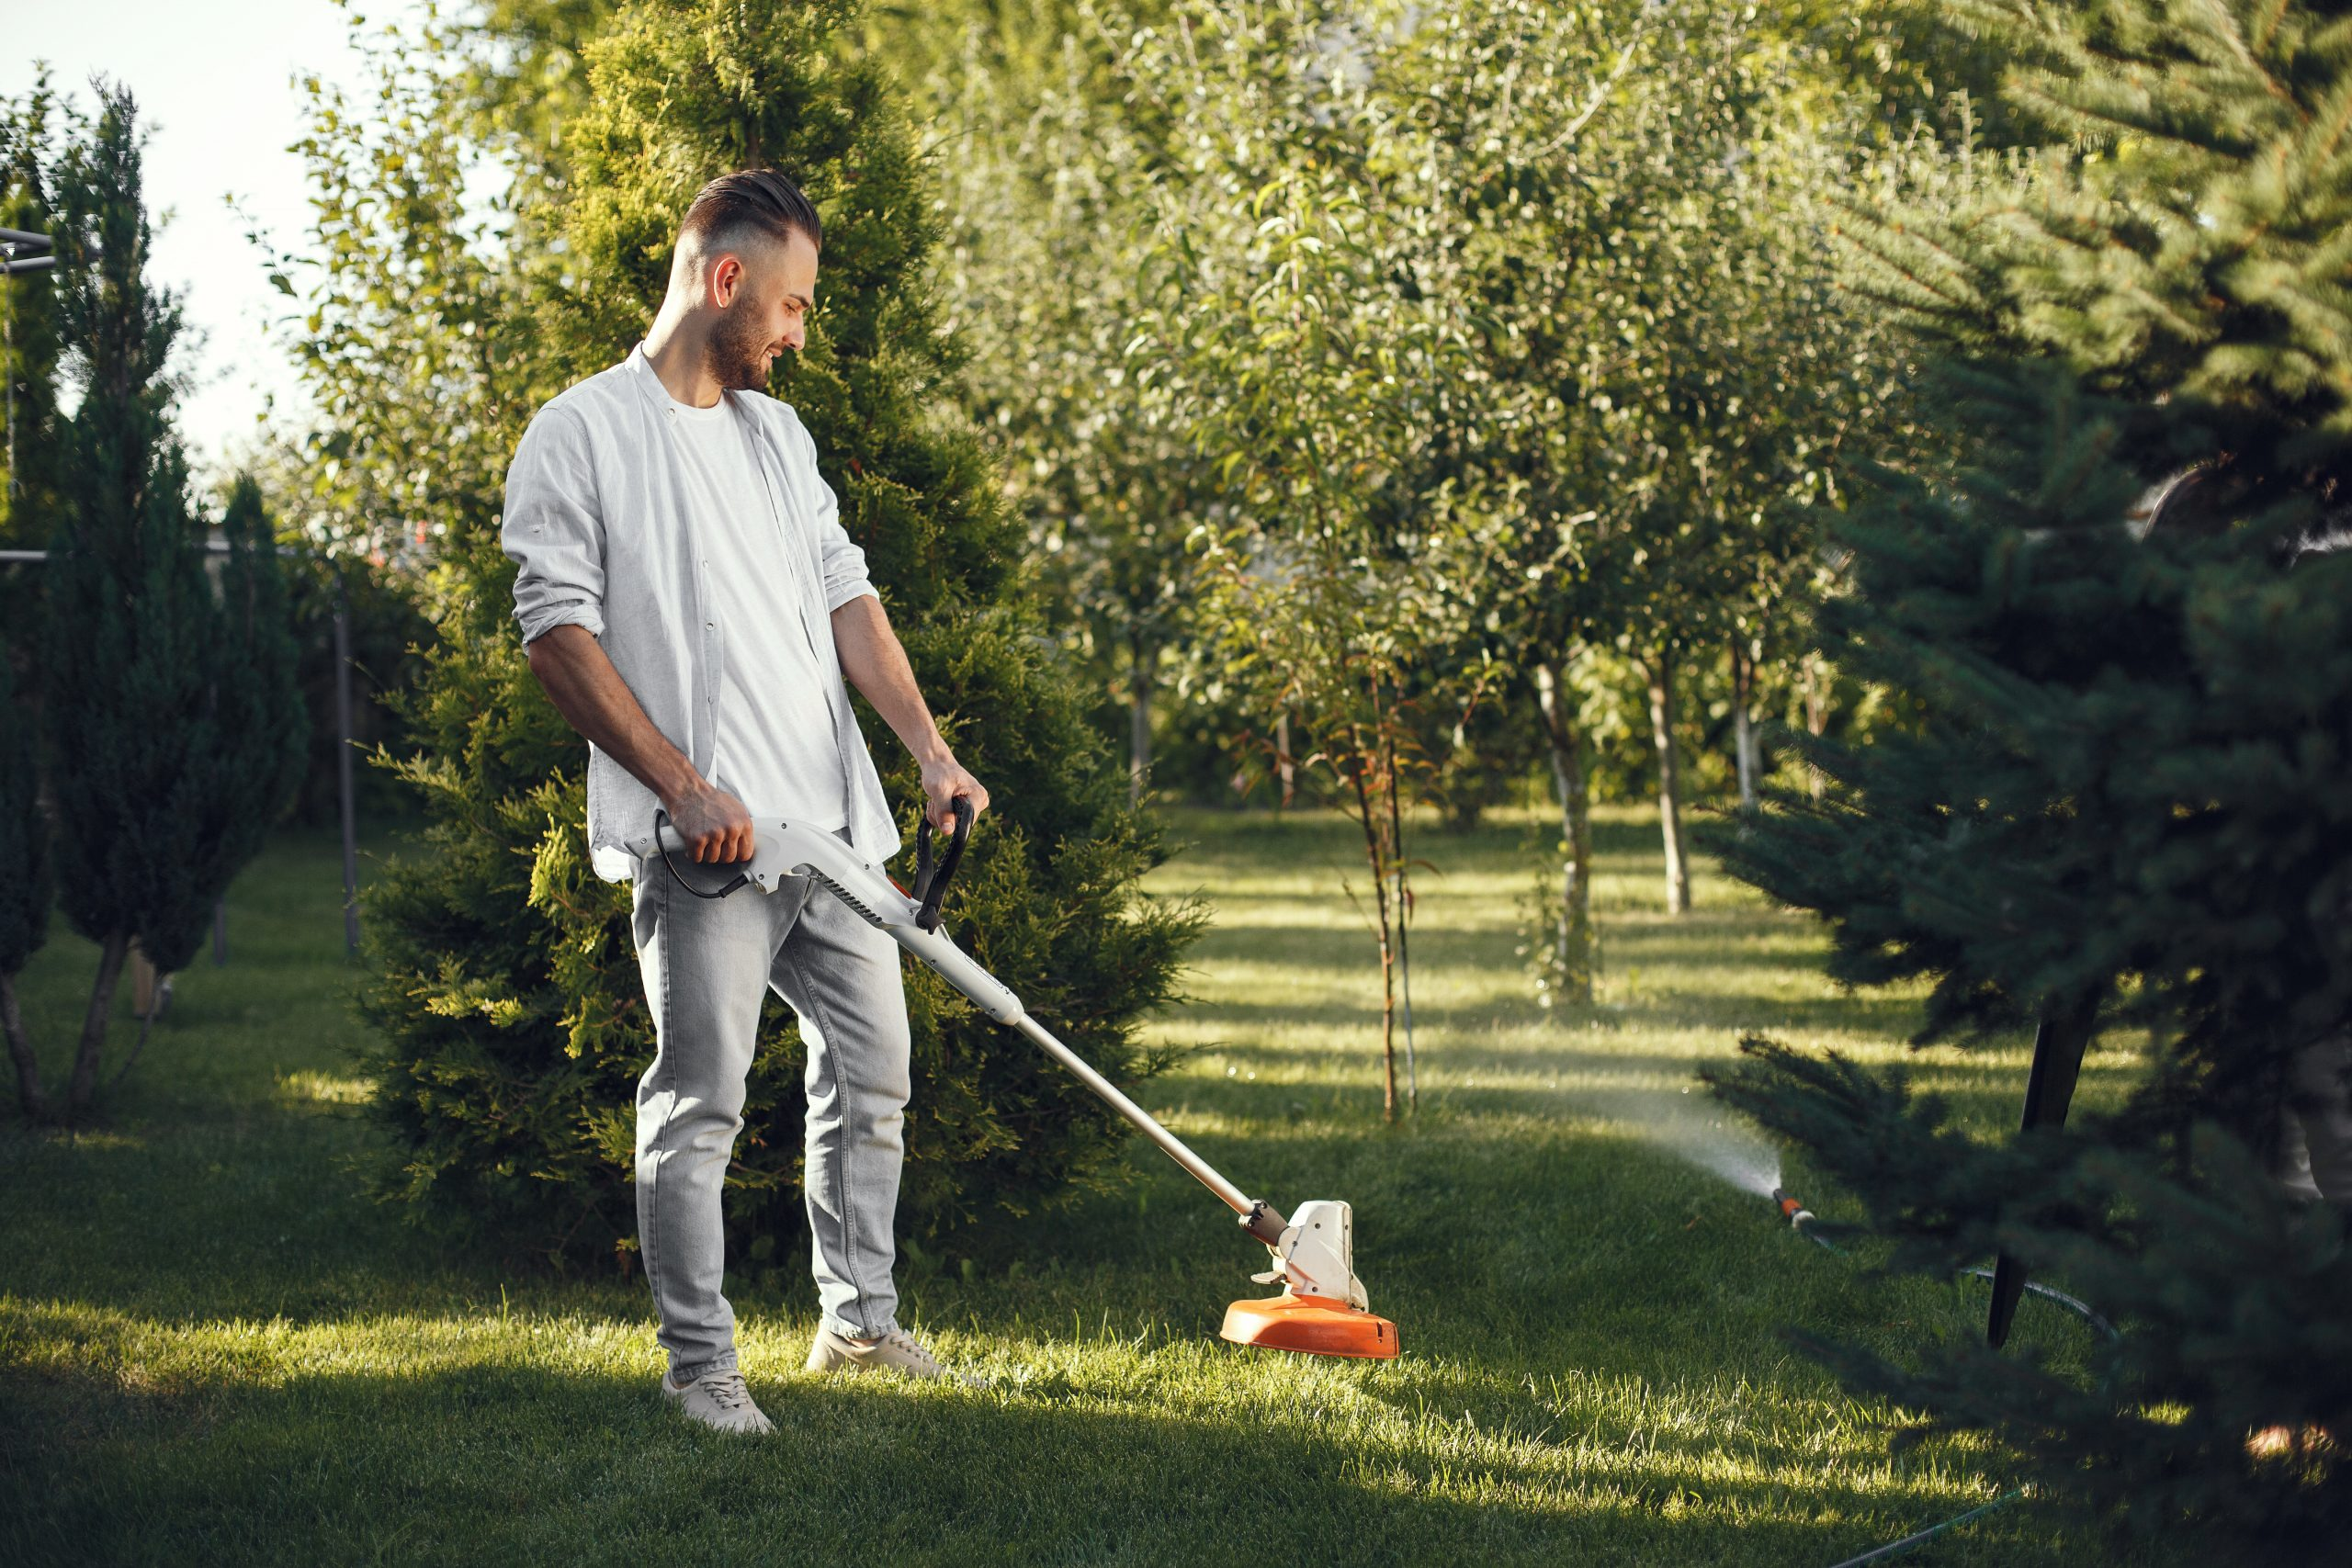 How to Prepare Your Lawn for the Fall